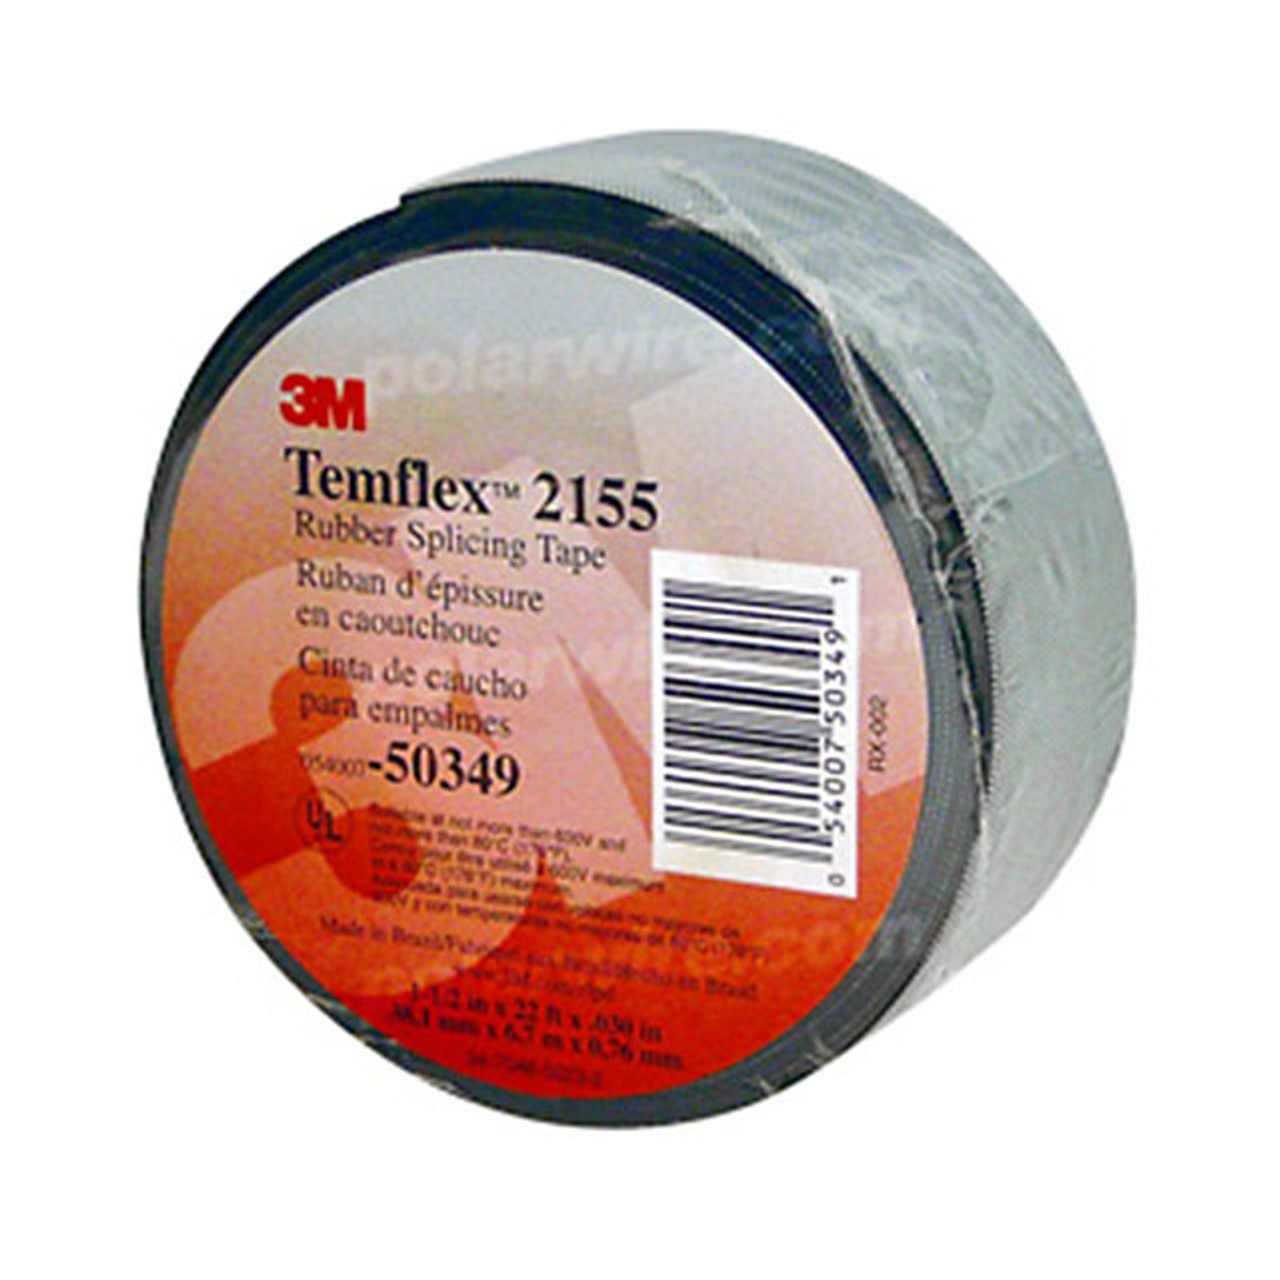 TAPE RUBBER SPLICING